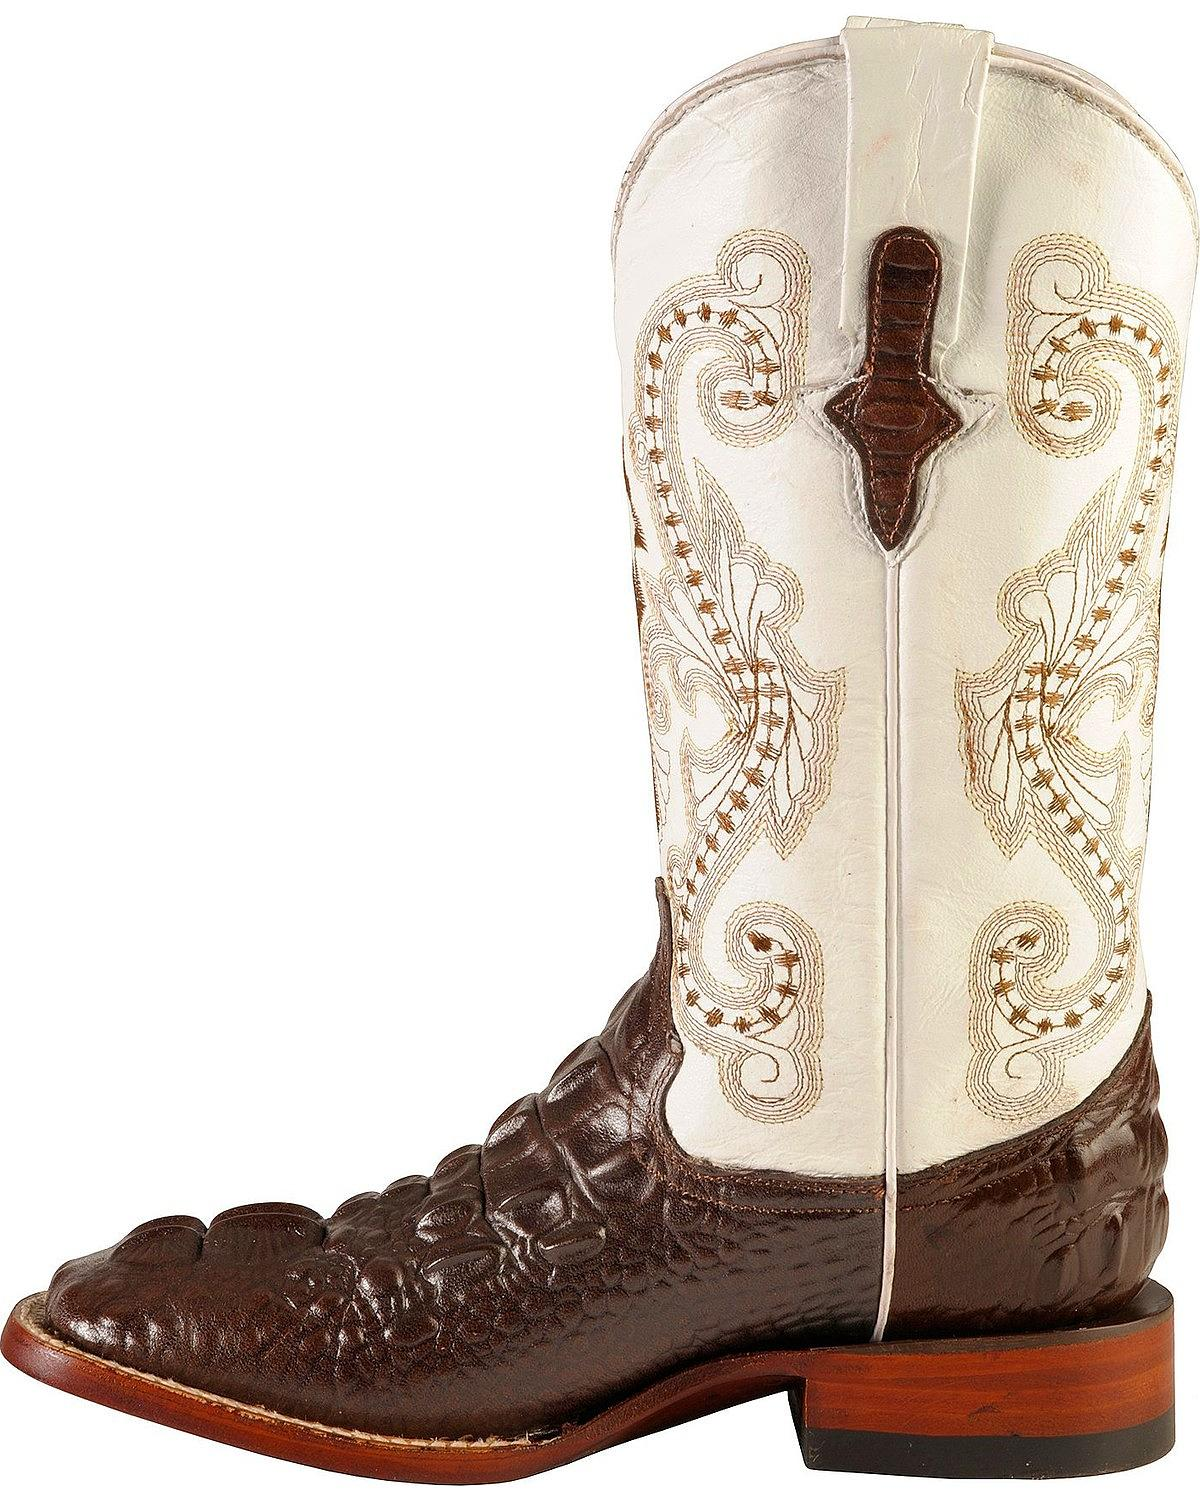 c087d2e0944 Details about Ferrini Hornback Caiman Print Cowgirl Boot - Wide Square Toe  - 9049309